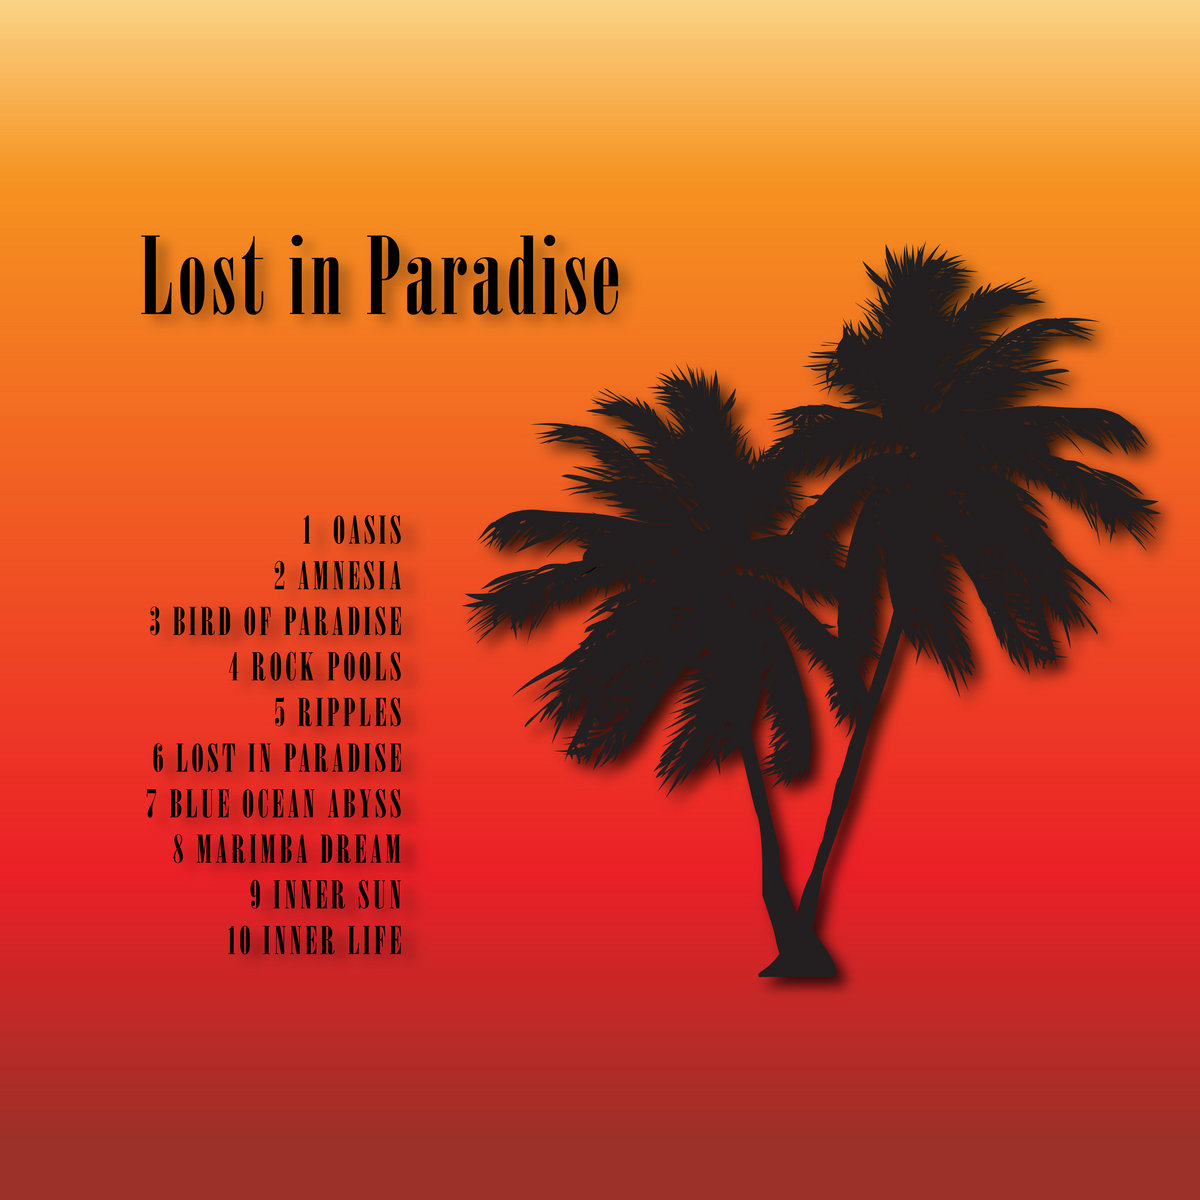 Paradise lost in